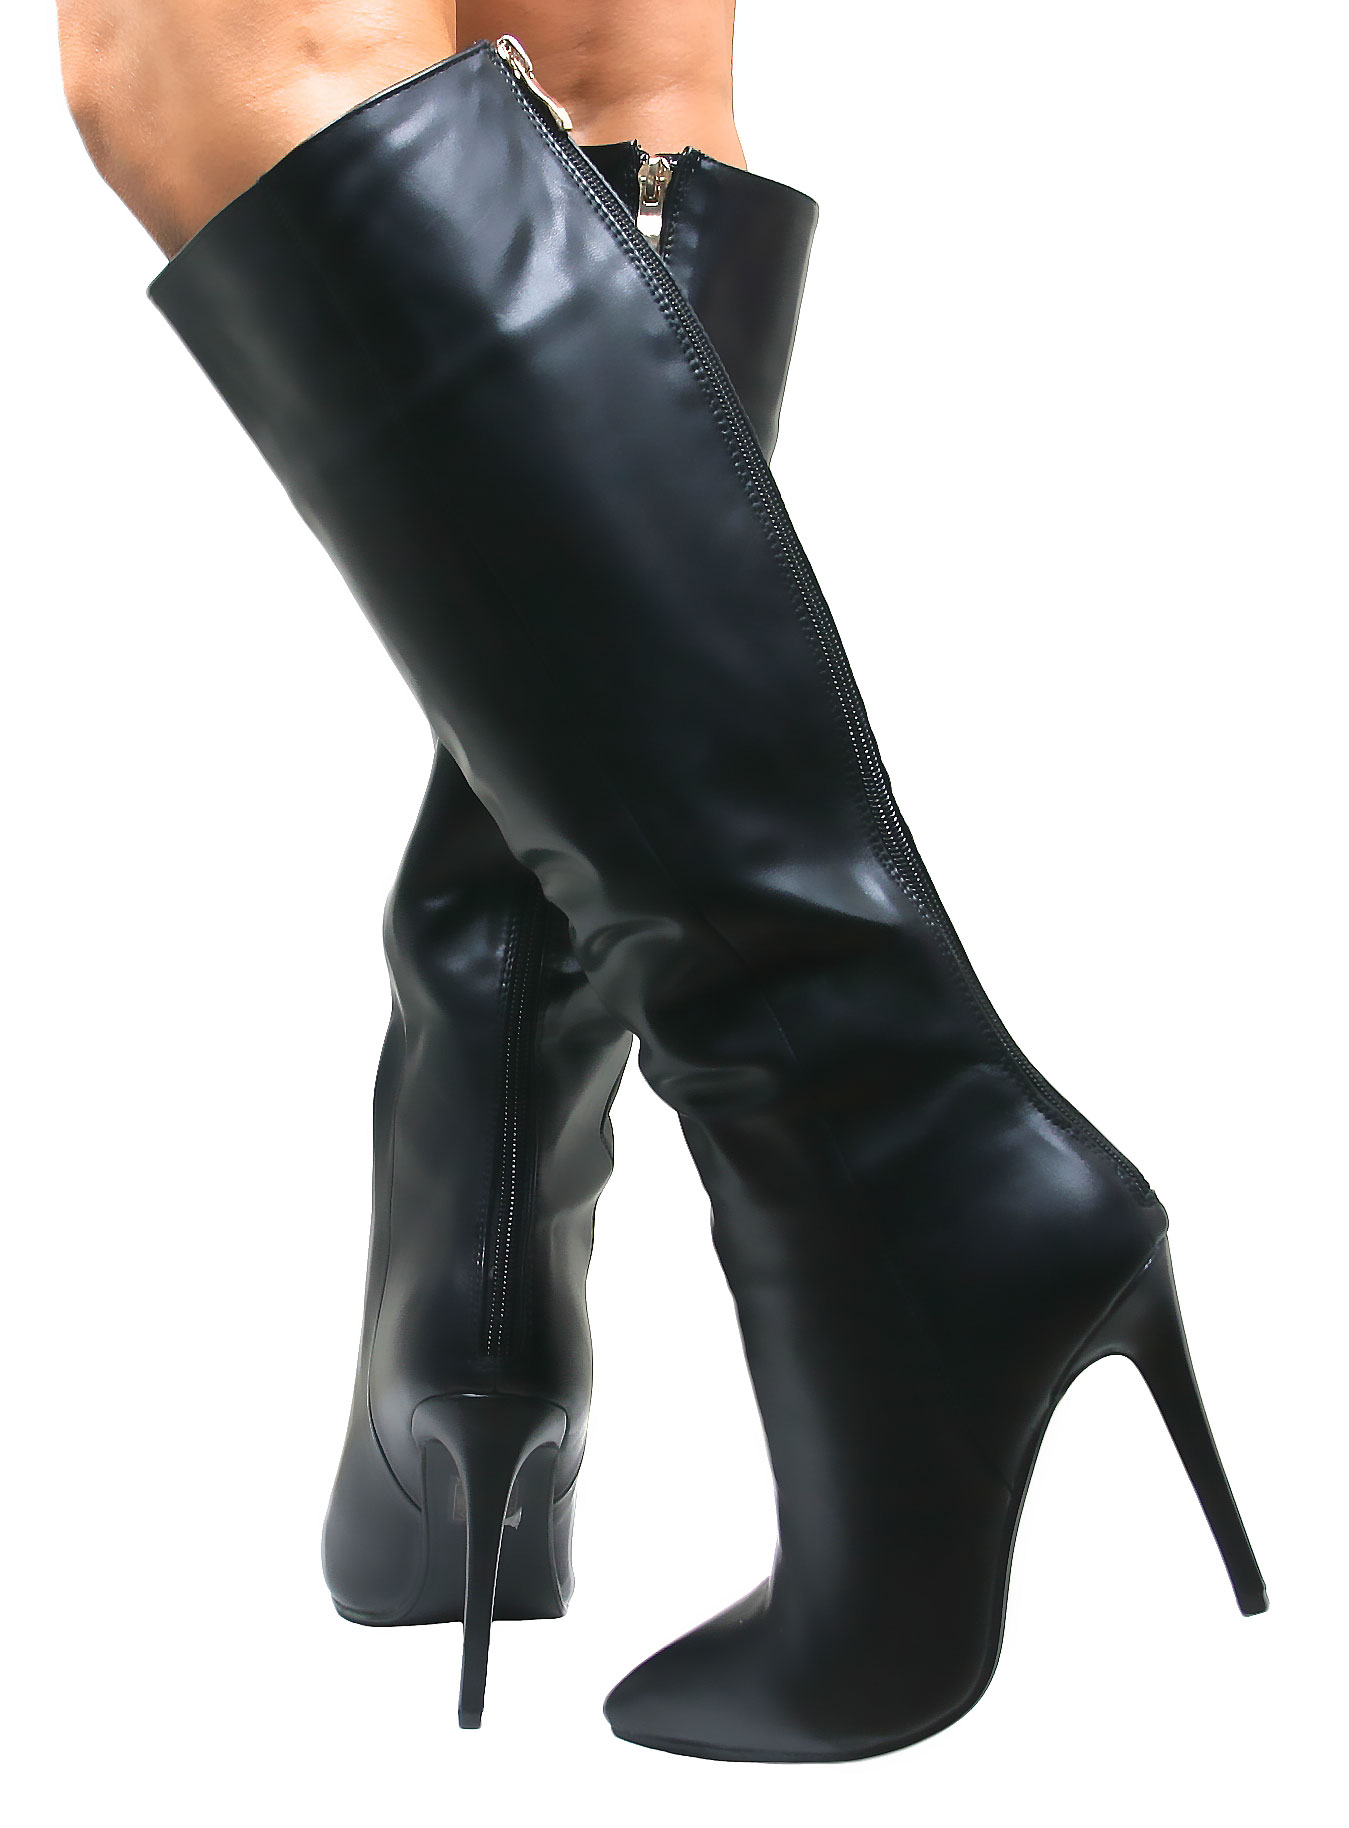 Boots amp stiletto heels mix 7